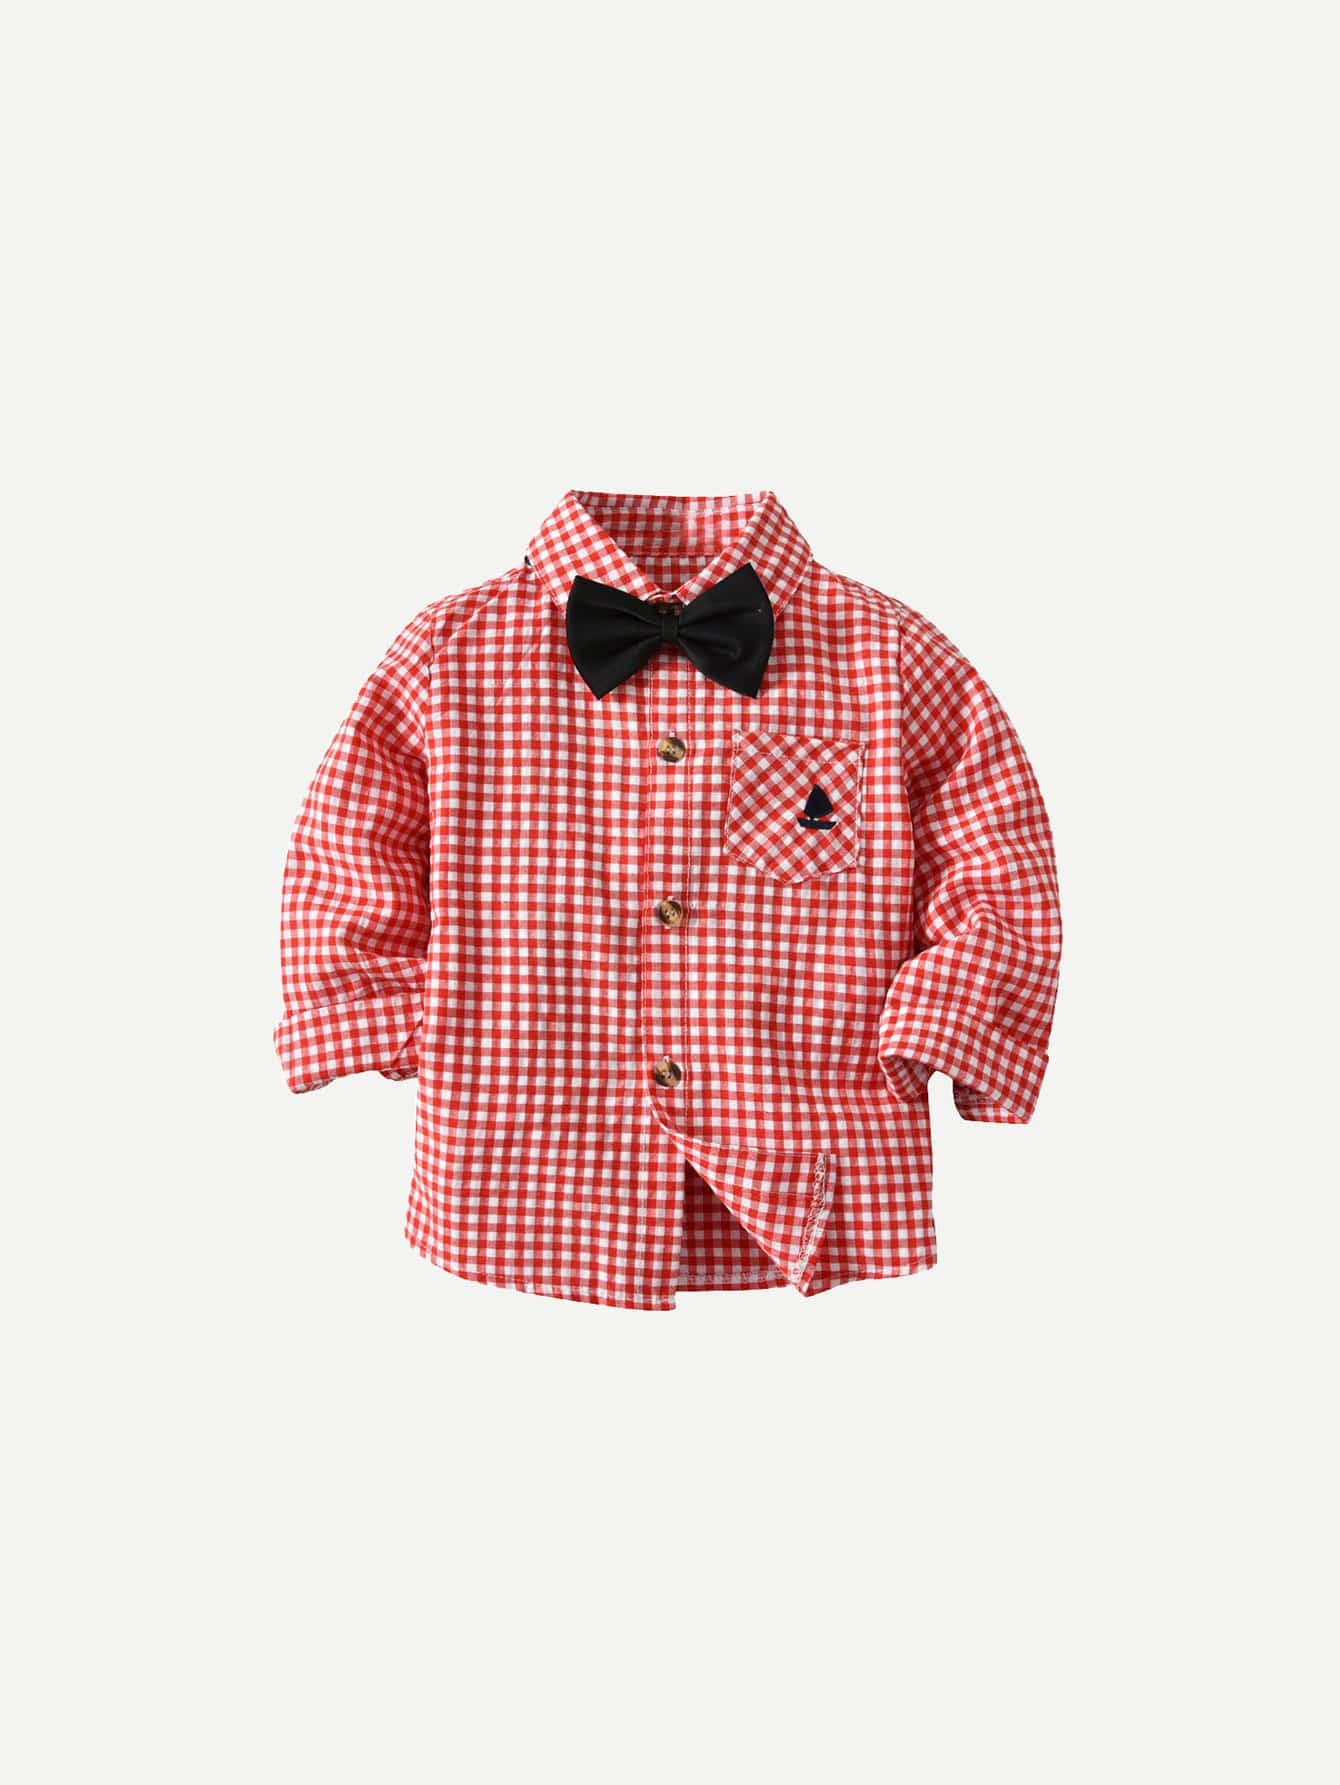 Boys Bow Front Gingham Shirt Boys Bow Front Gingham Shirt